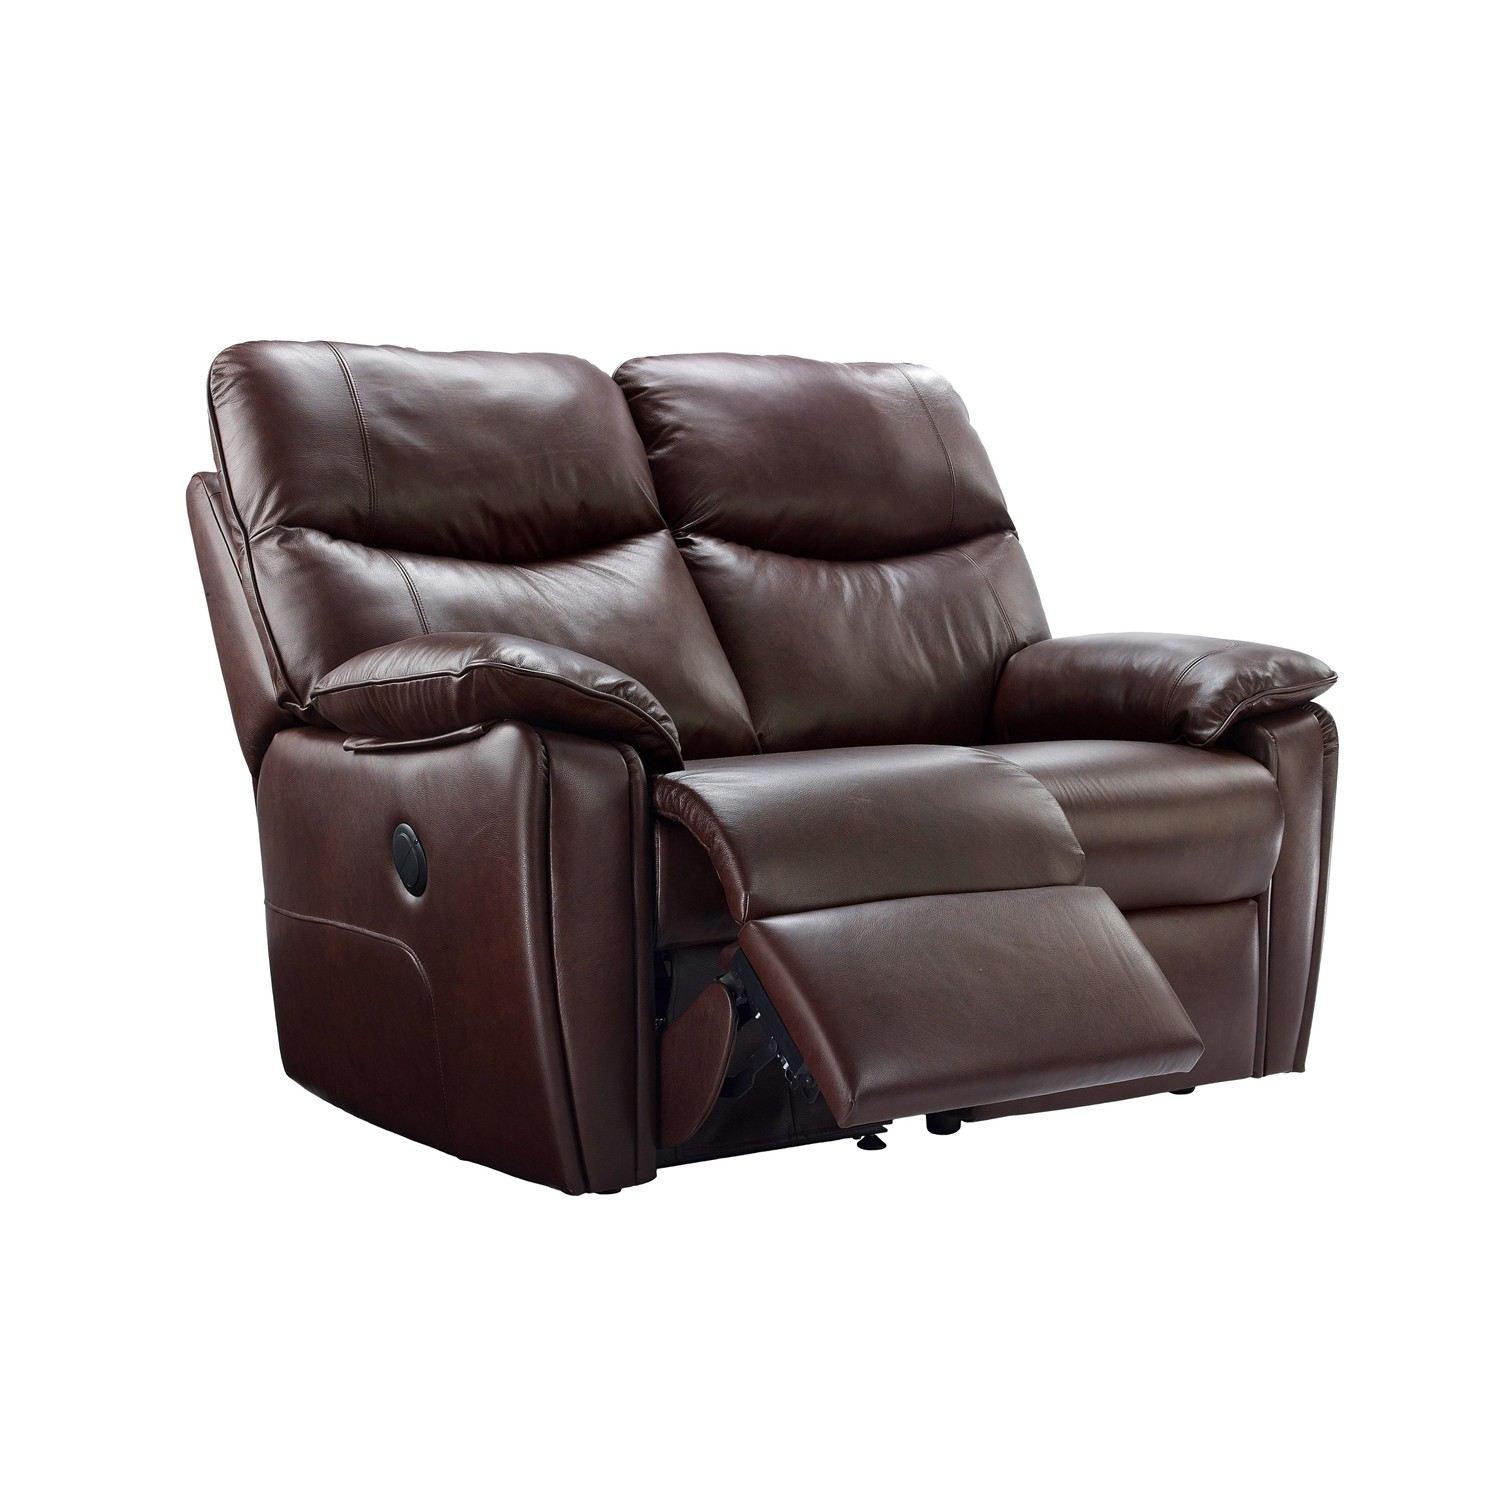 Double Recliner Chair G Plan Henley Two Seater Power Double Recliner Sofa